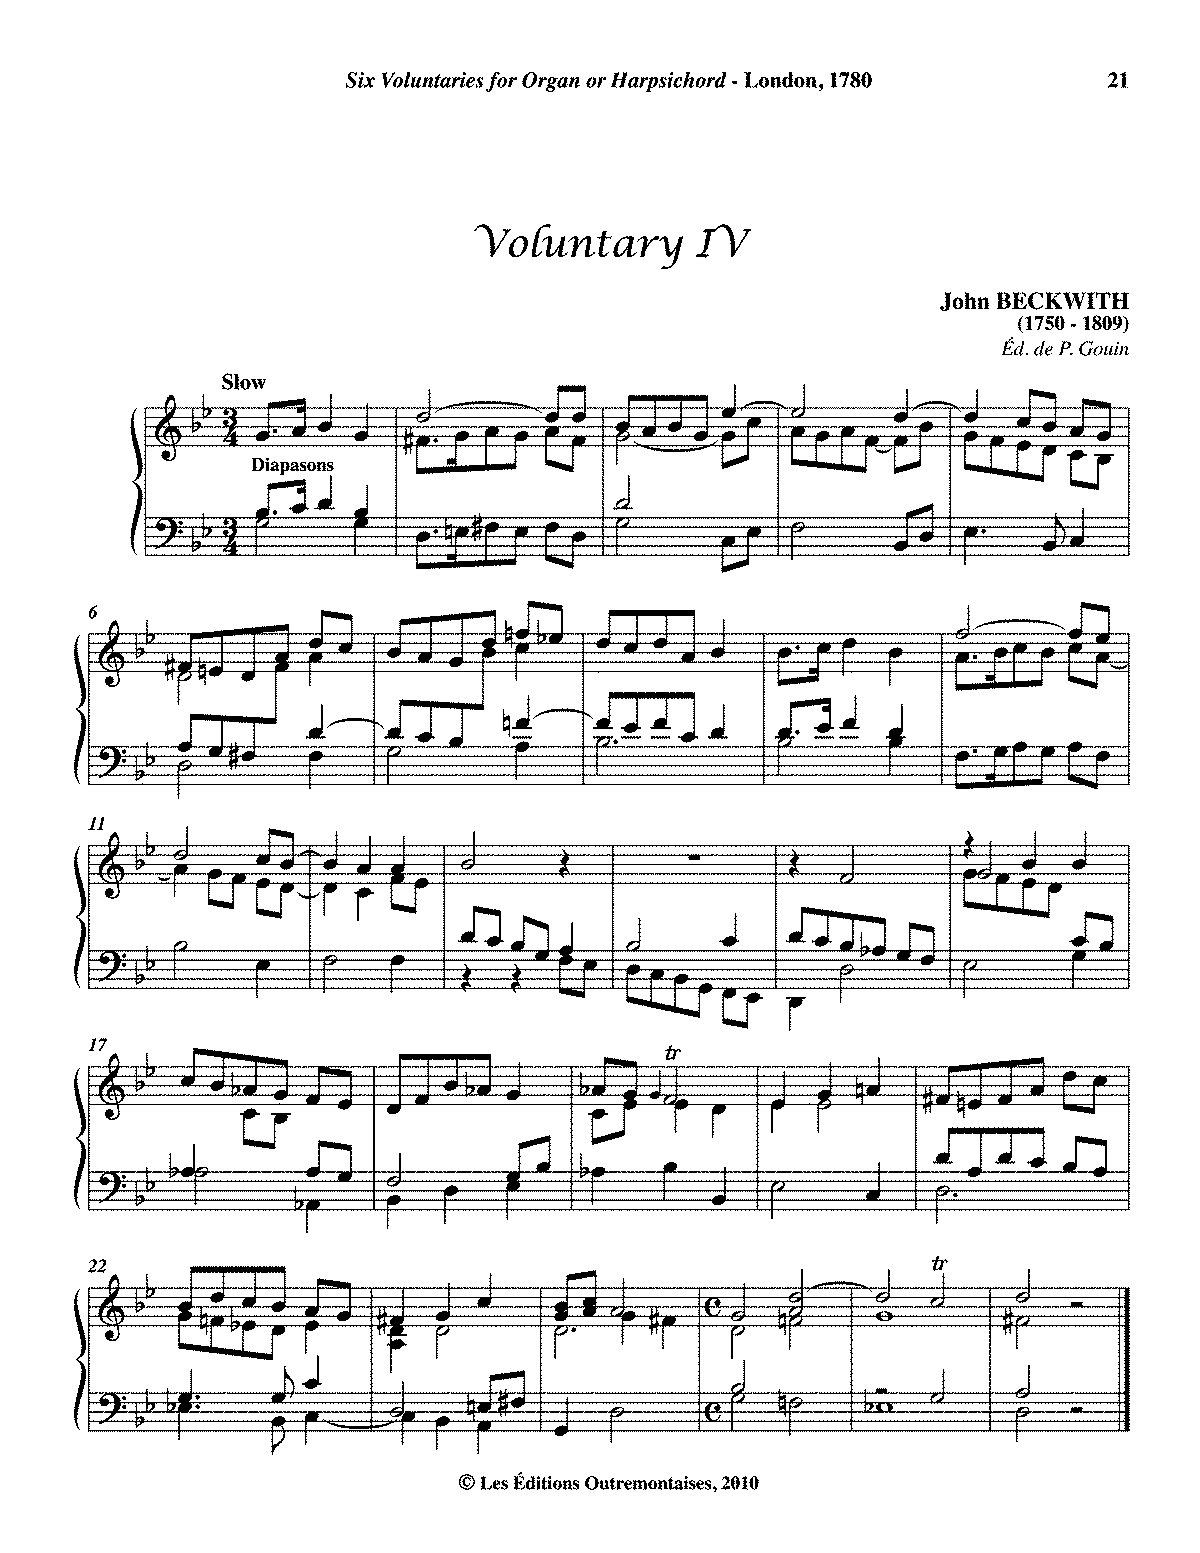 WIMA.d8d0-Beckwith Voluntary 4.pdf